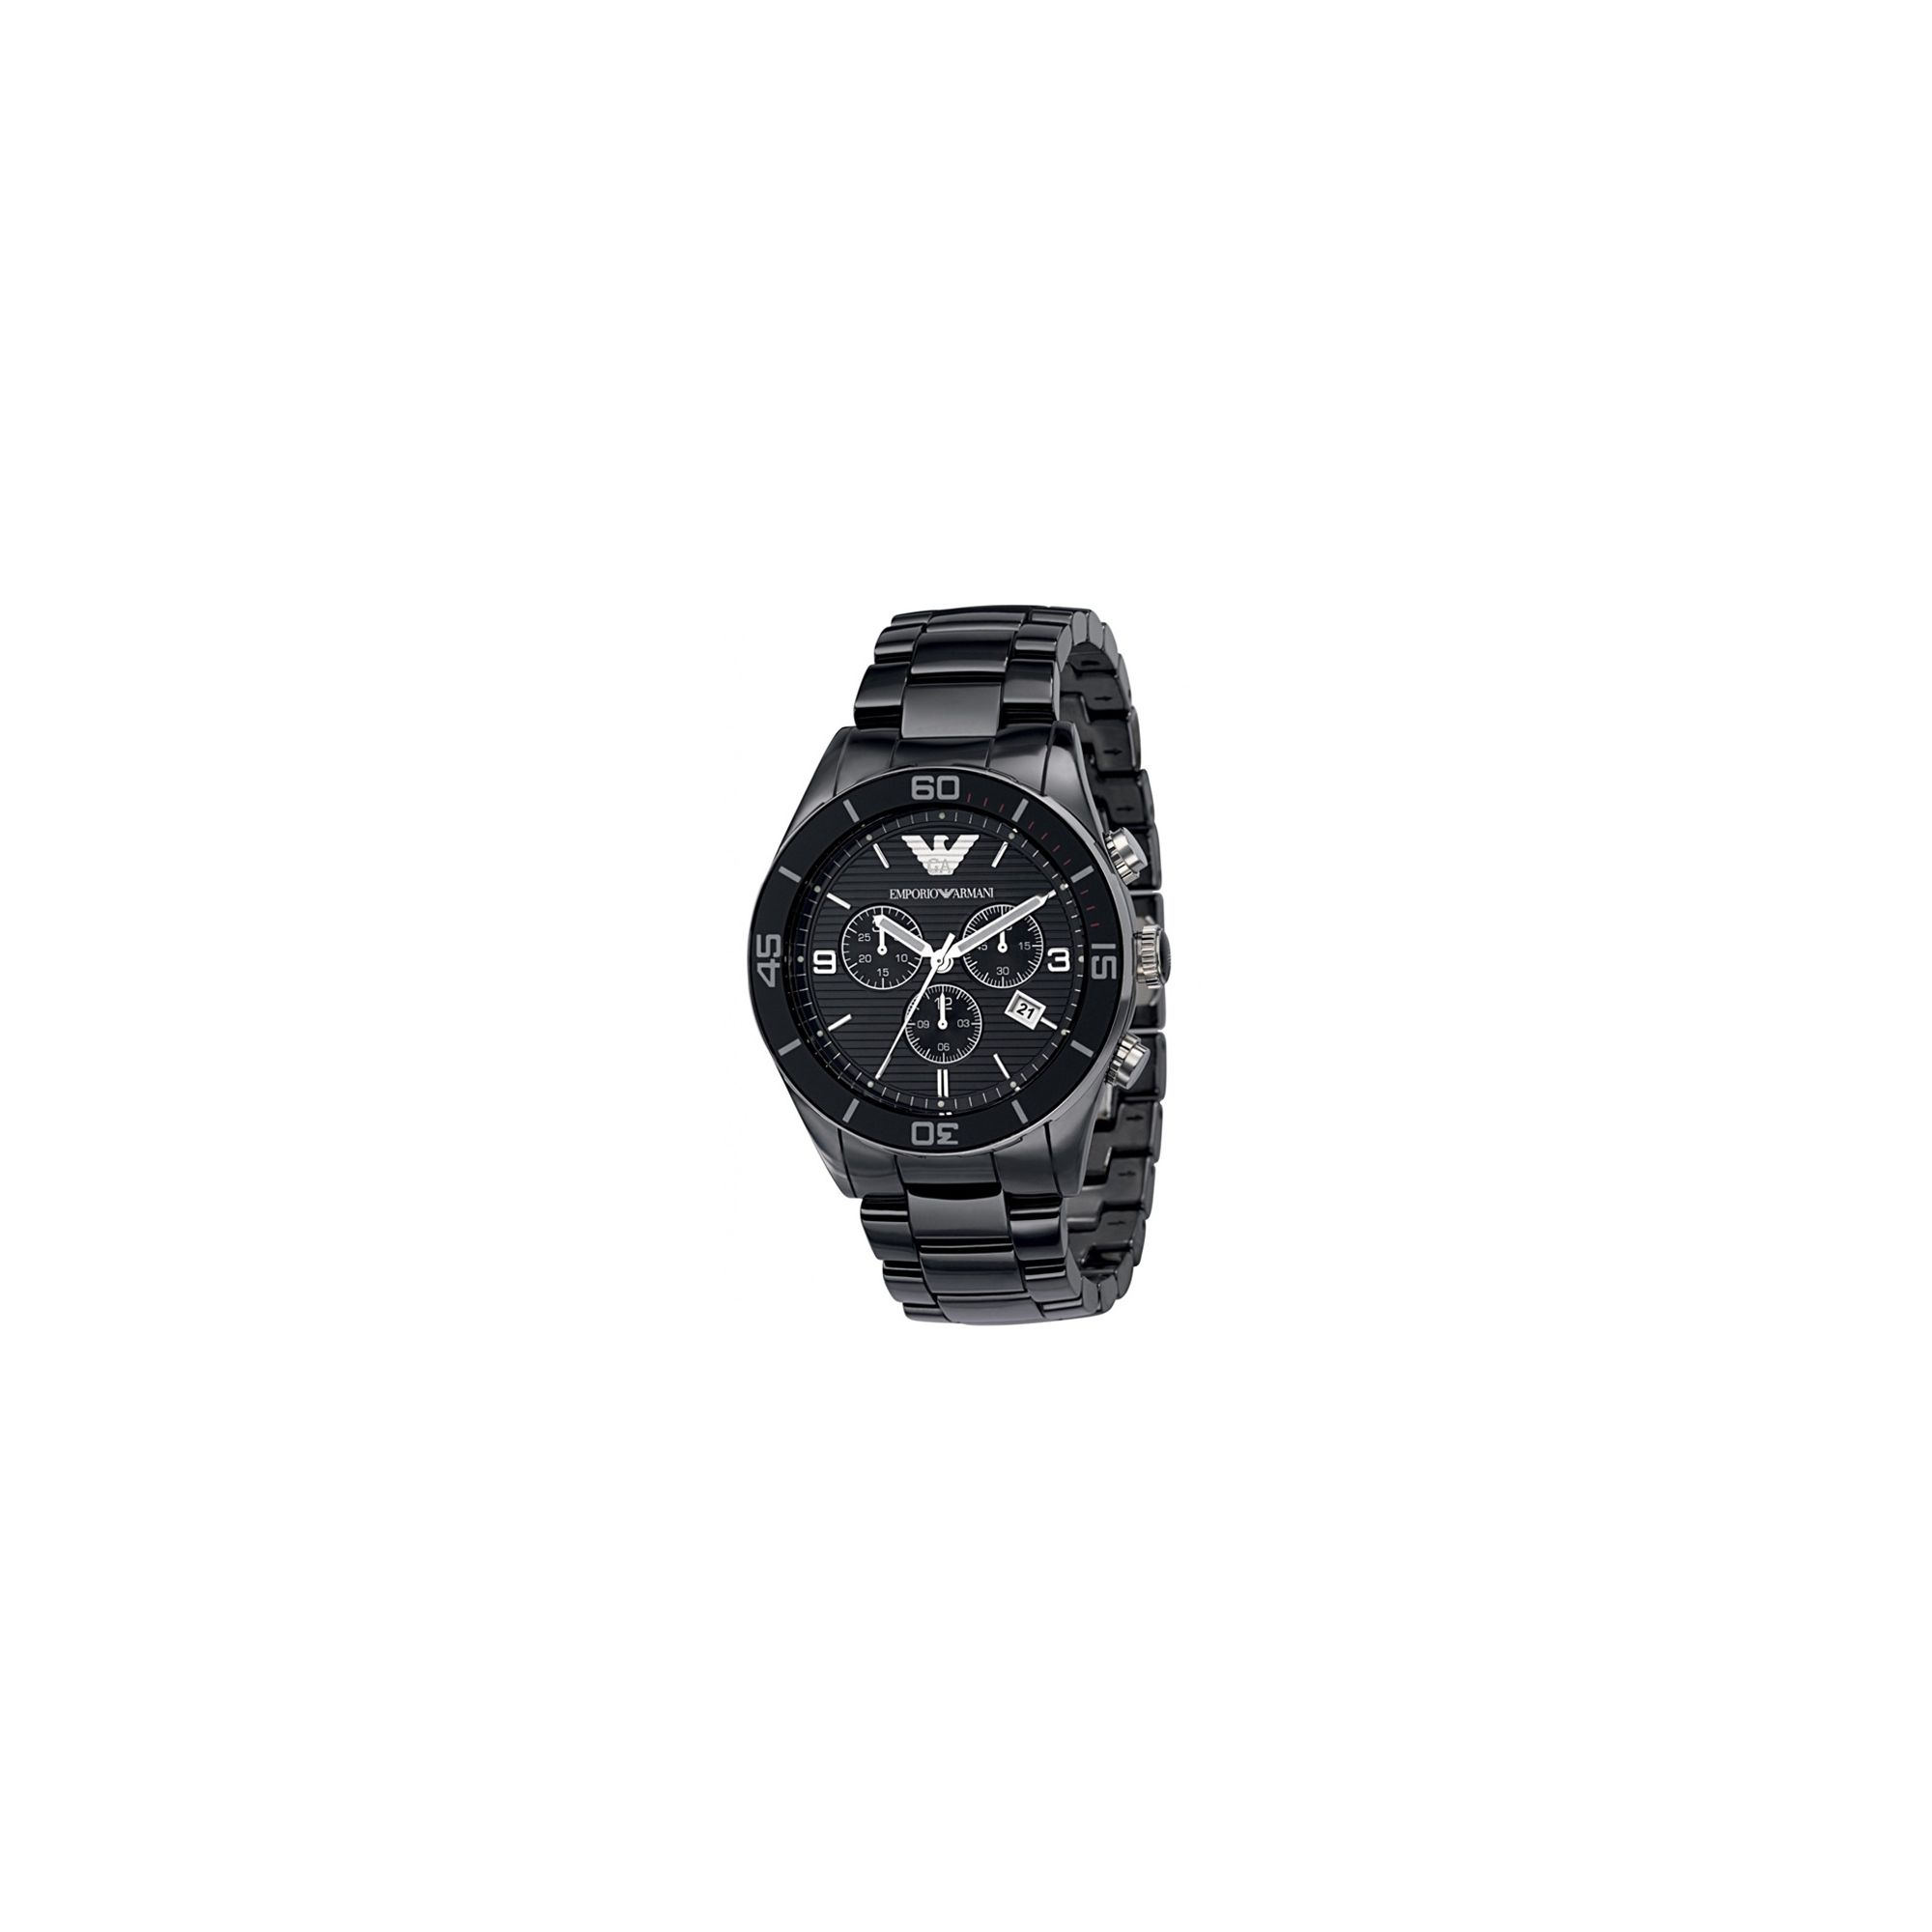 Emporio Armani Black Ceramica Chrono Watch AR1421 at Tesco Direct